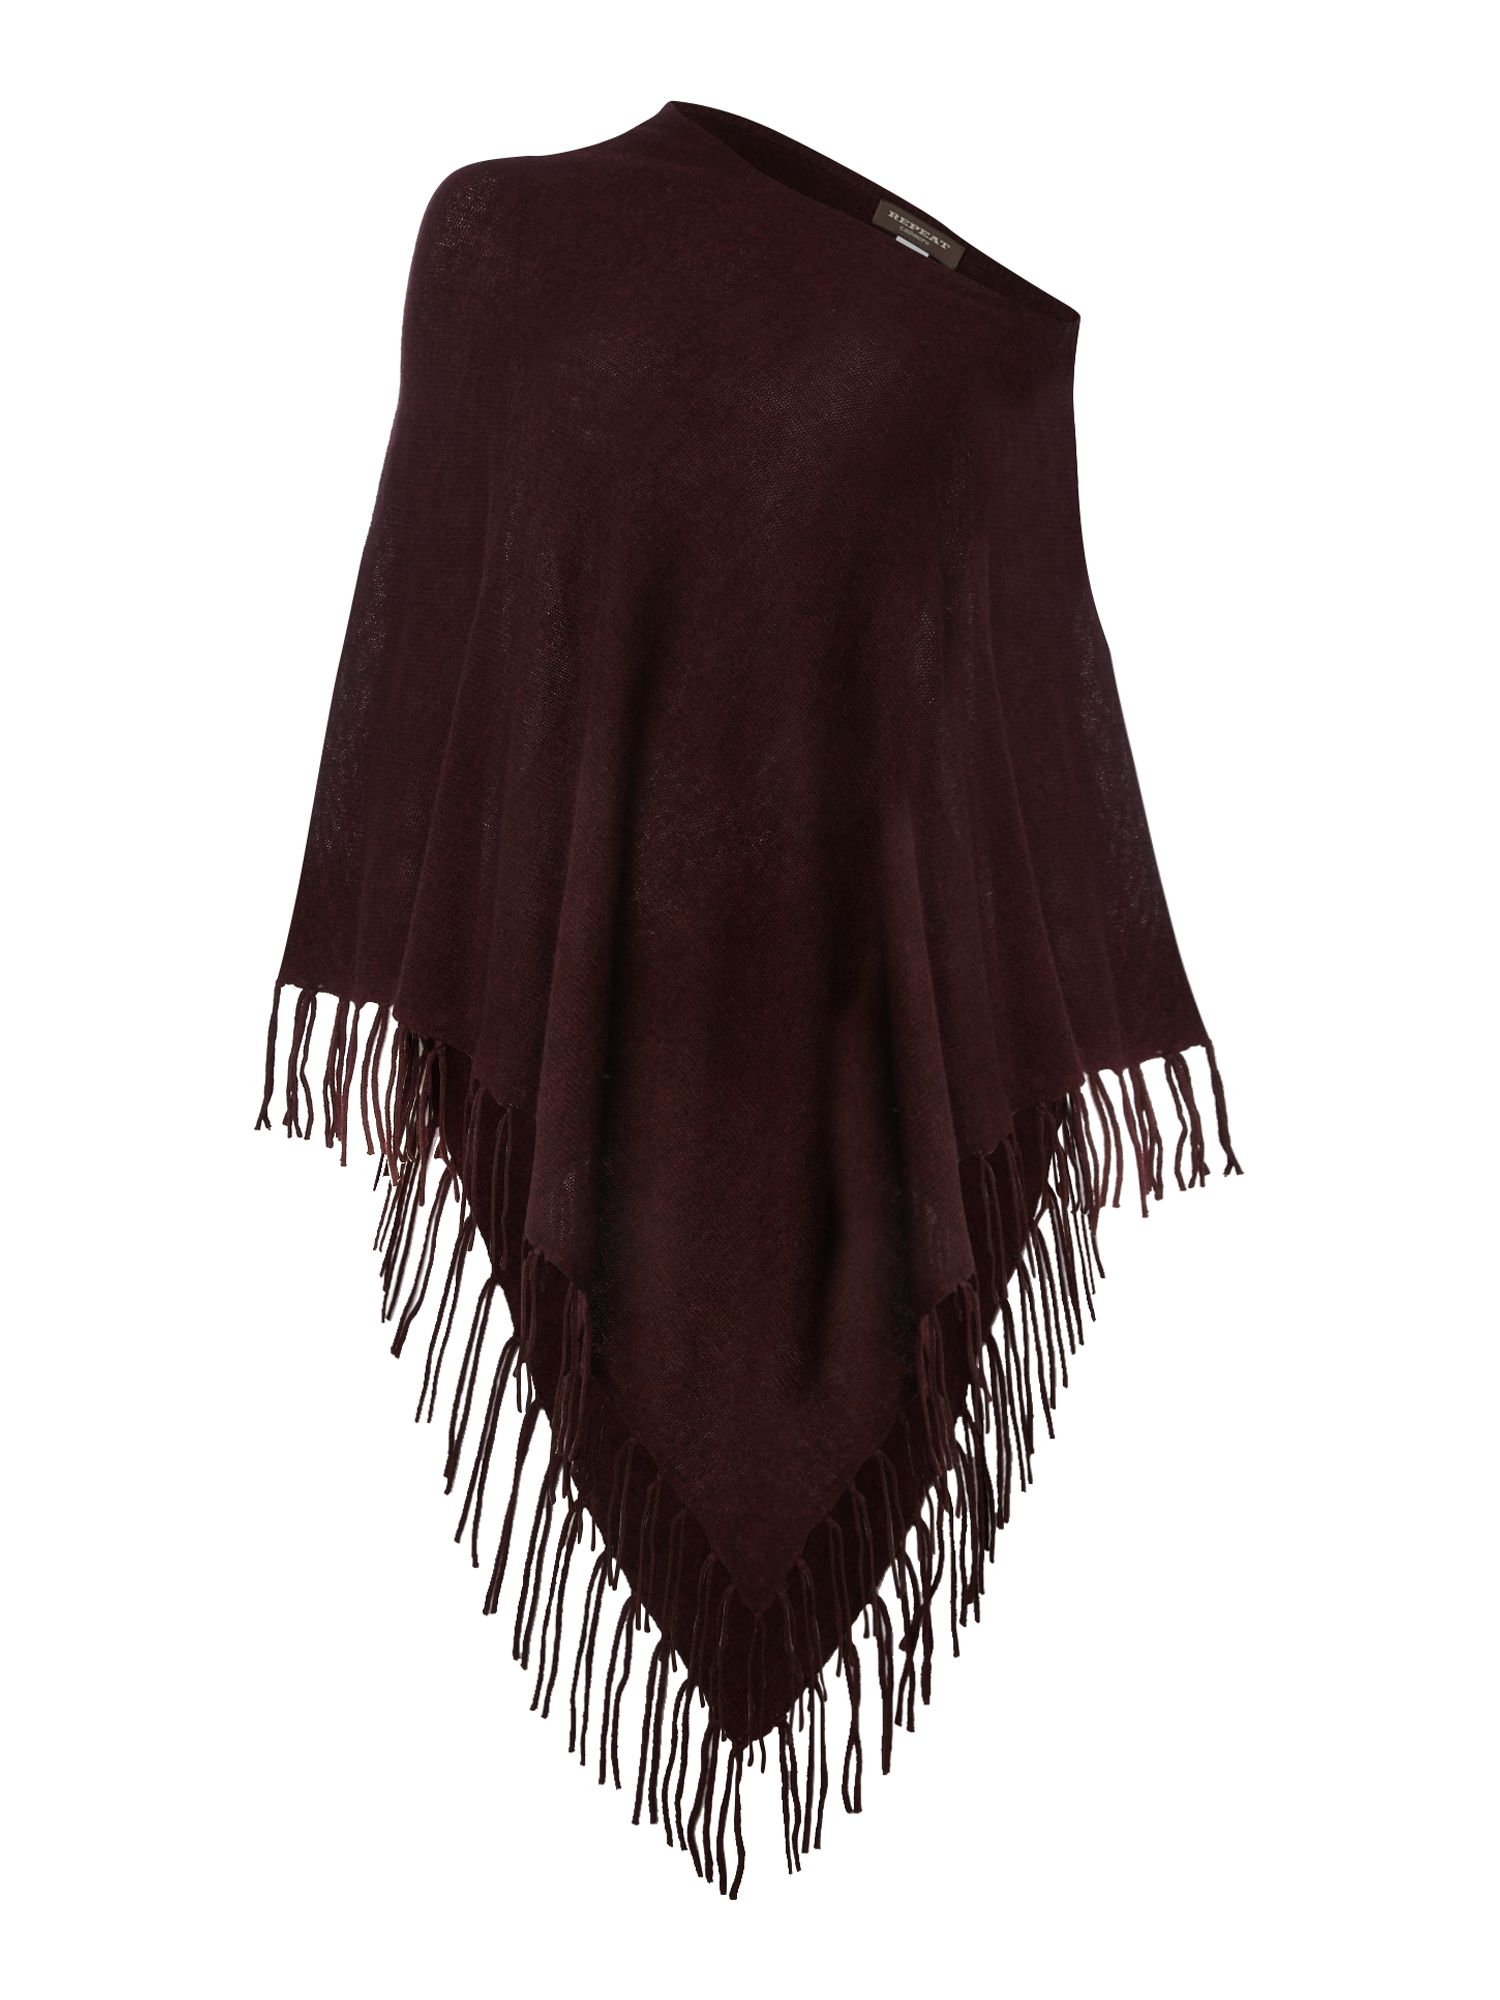 Repeat Cashmere Repeat Cashmere Tassle poncho, Red